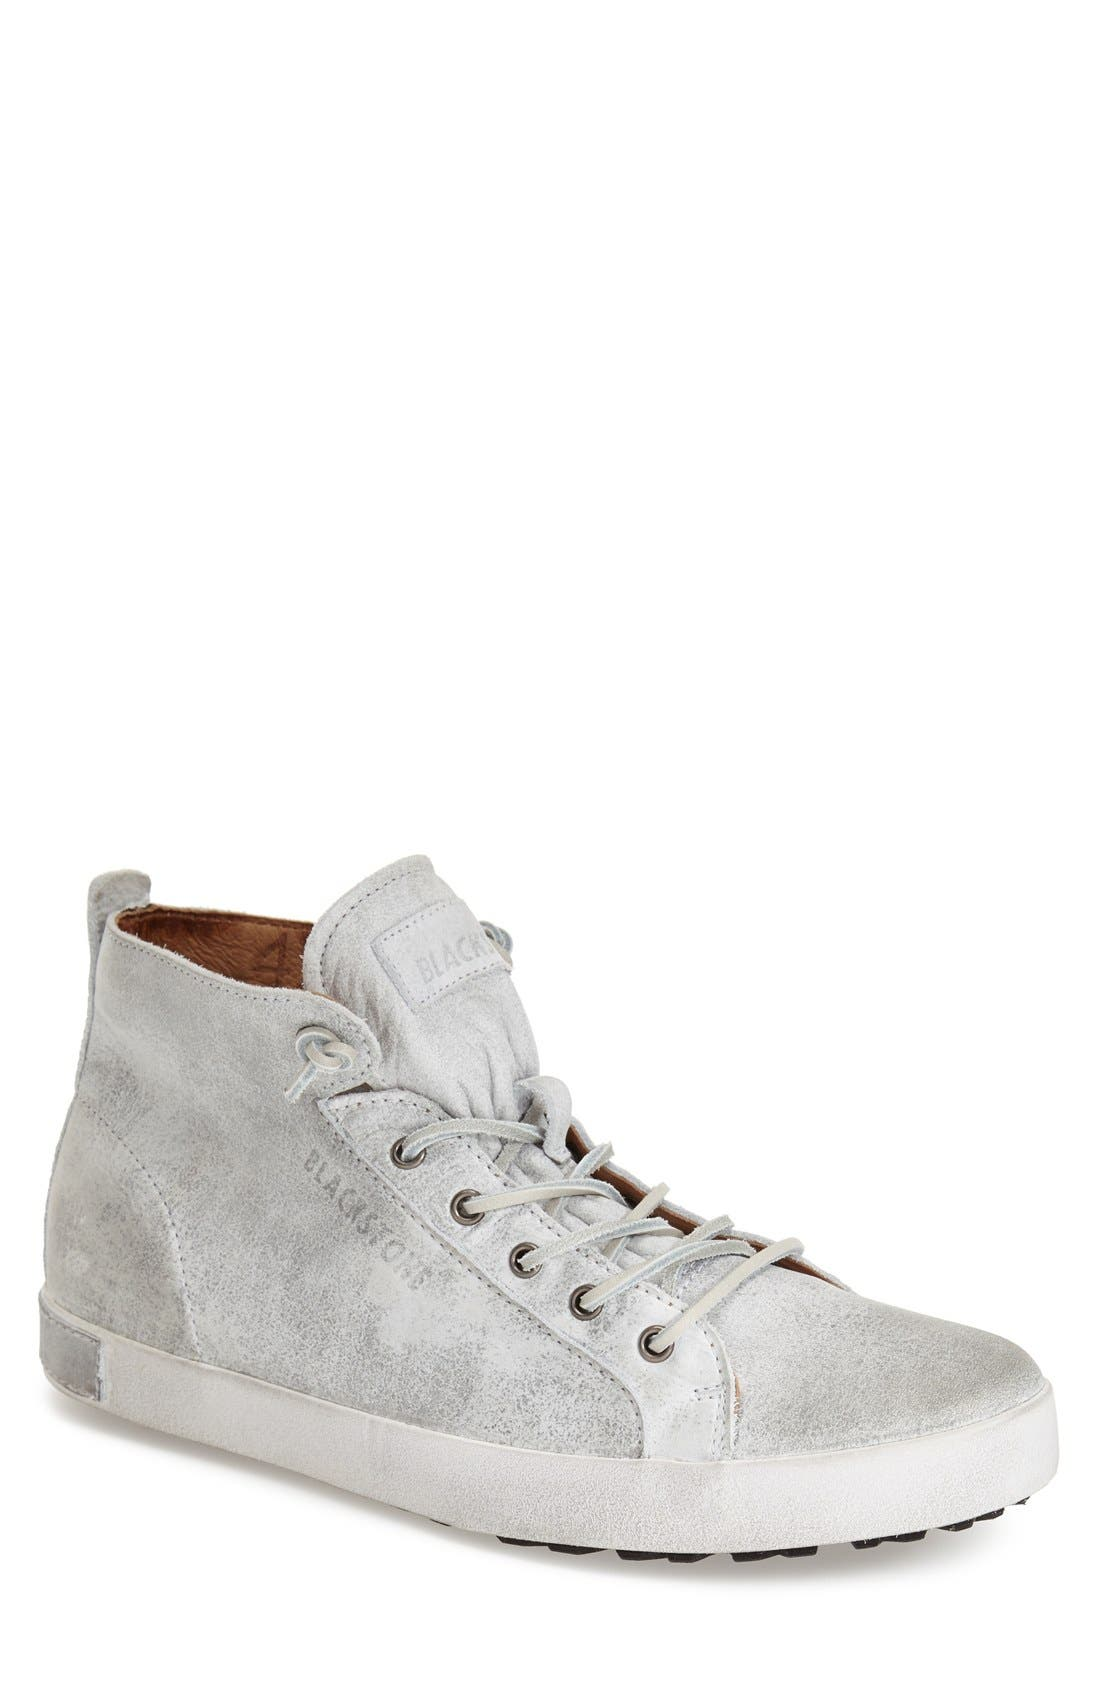 'JM 02' High Top Sneaker,                             Main thumbnail 1, color,                             White Leather